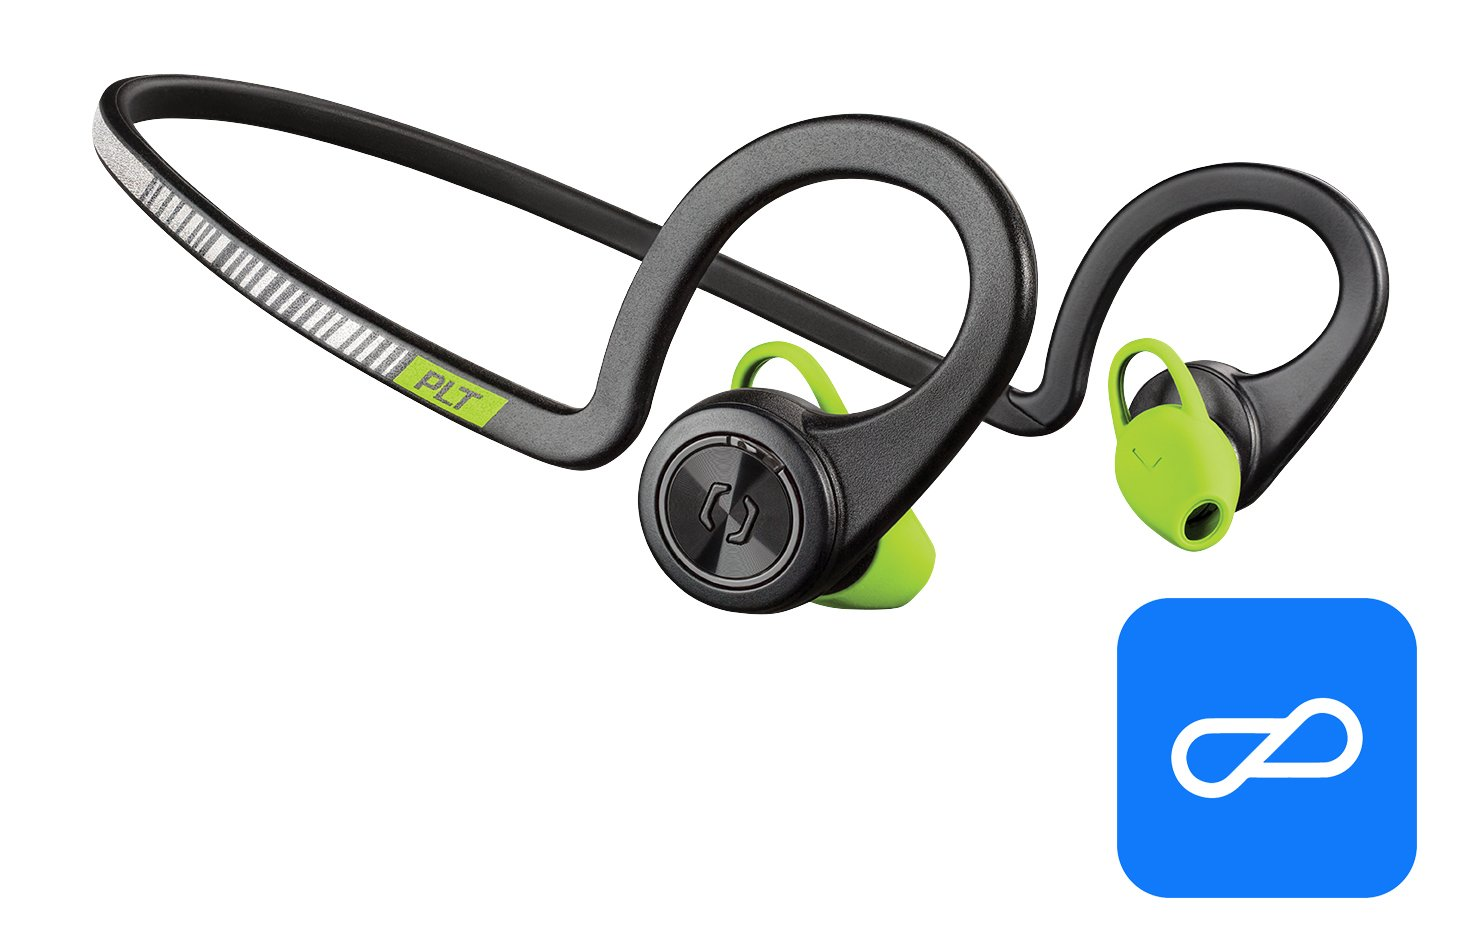 Plantronics BackBeat FIT Training Edition Sport Earbuds, Waterproof Wireless Headphones, Access to Interactive Audio Coaching from the PEAR Personal Coach App, Black Core